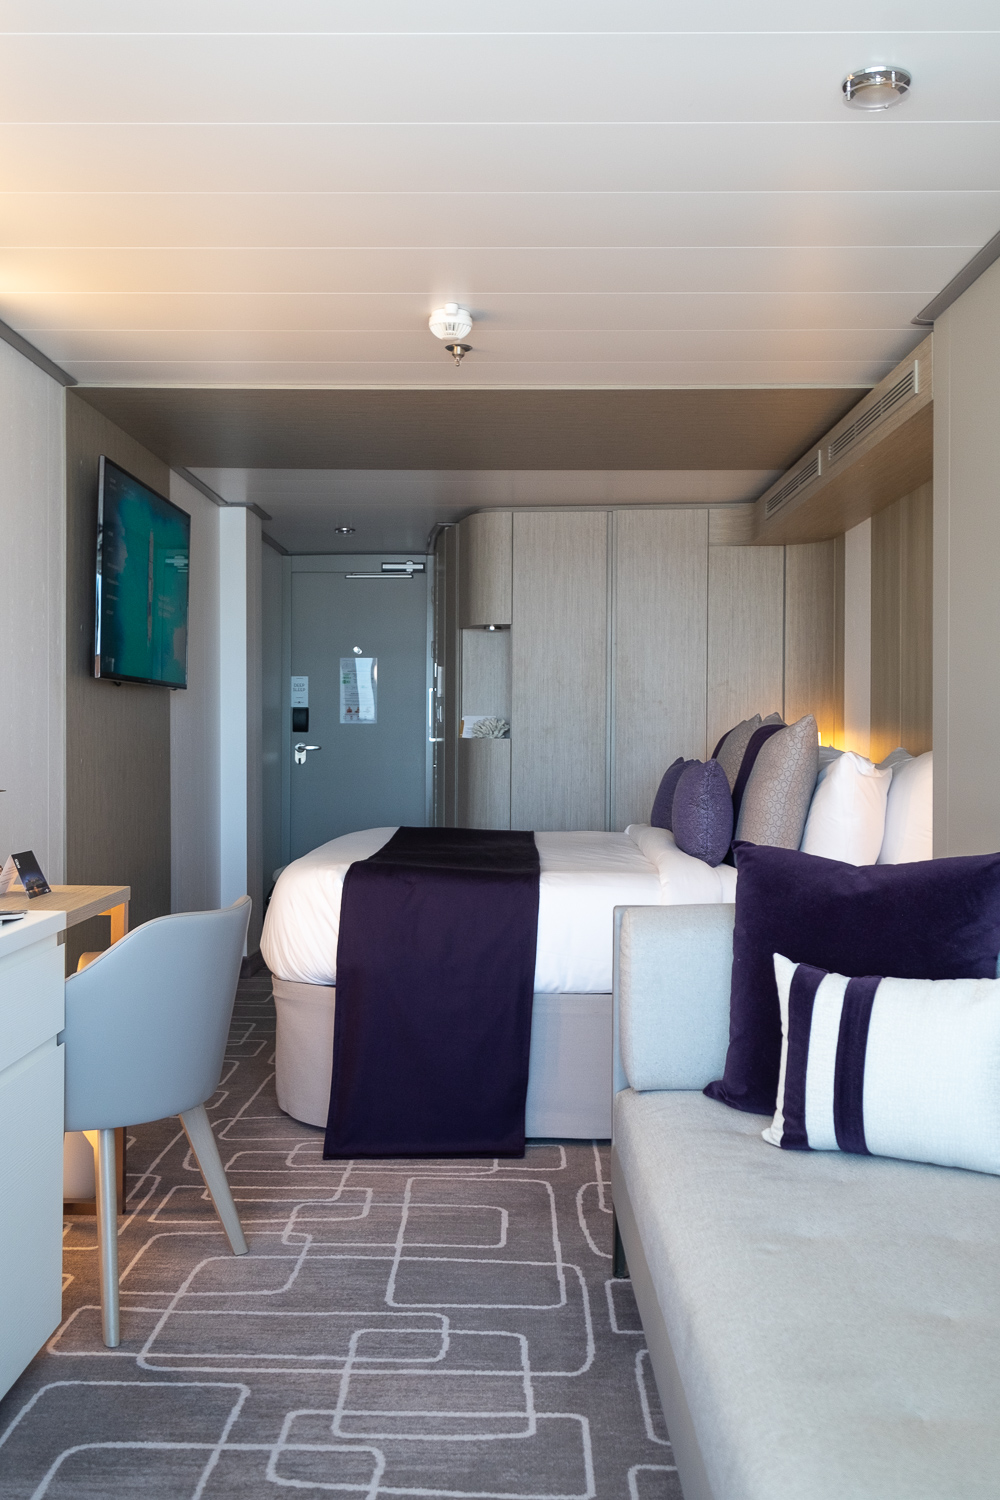 Staterooms | 12 reasons to choose Celebrity Edge for your next cruise | Mondomulia